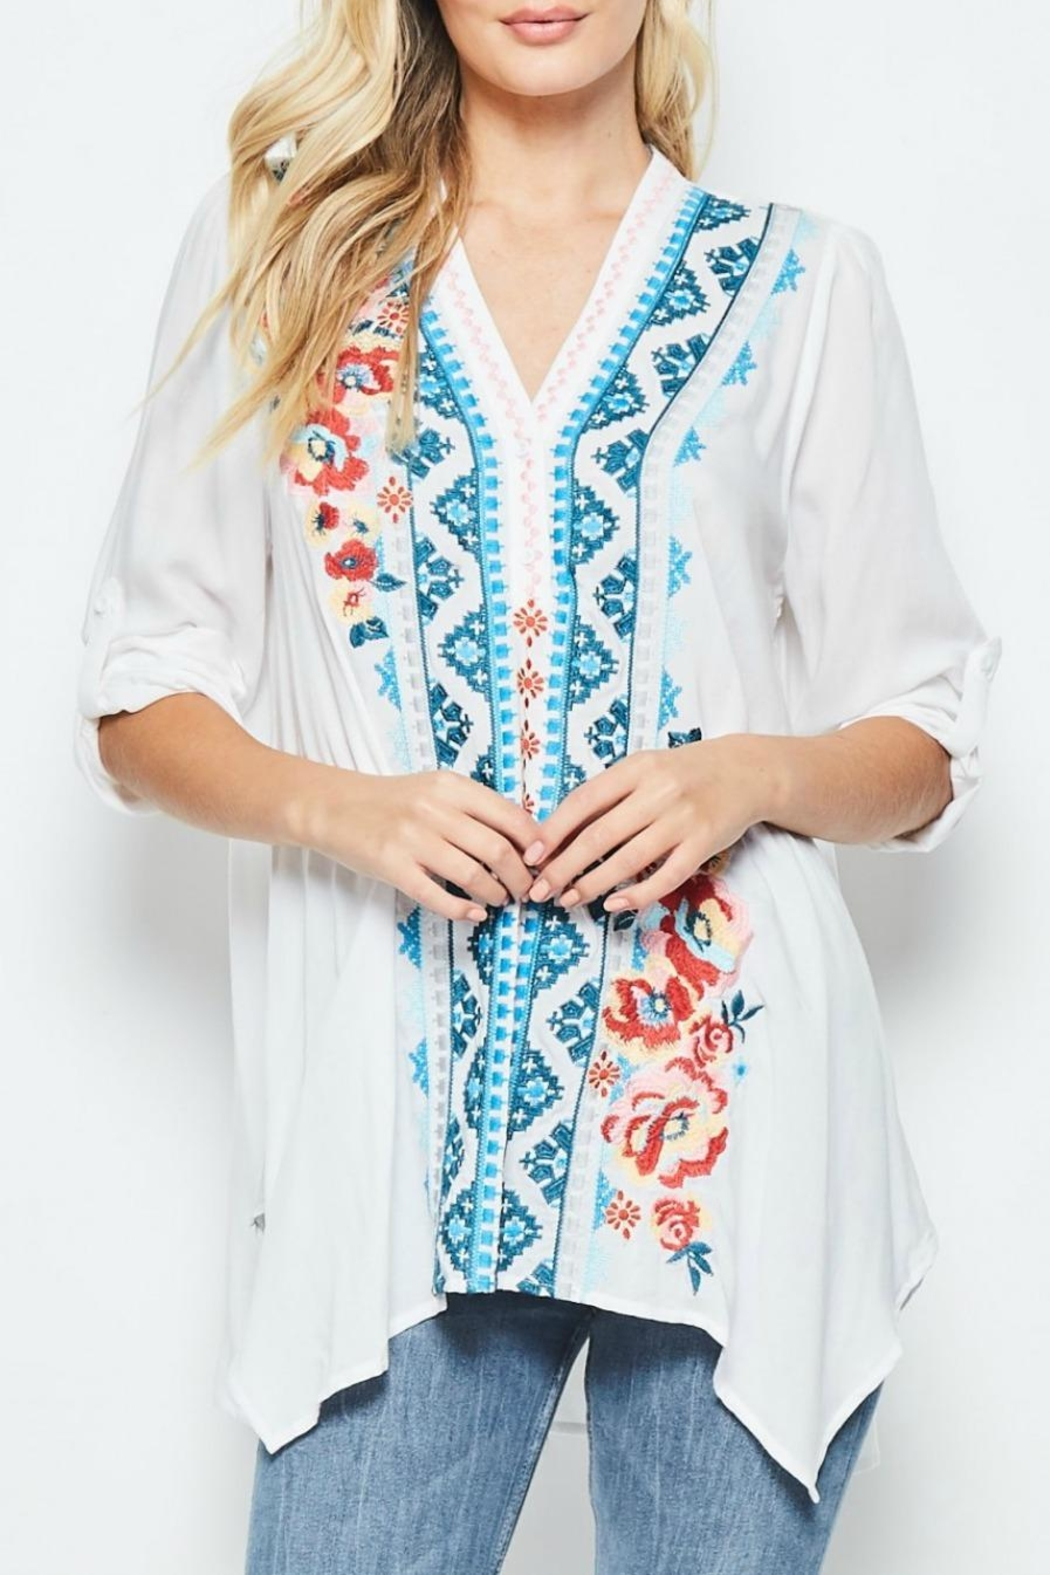 Andree by Unit Embroidered White Tunic - Main Image